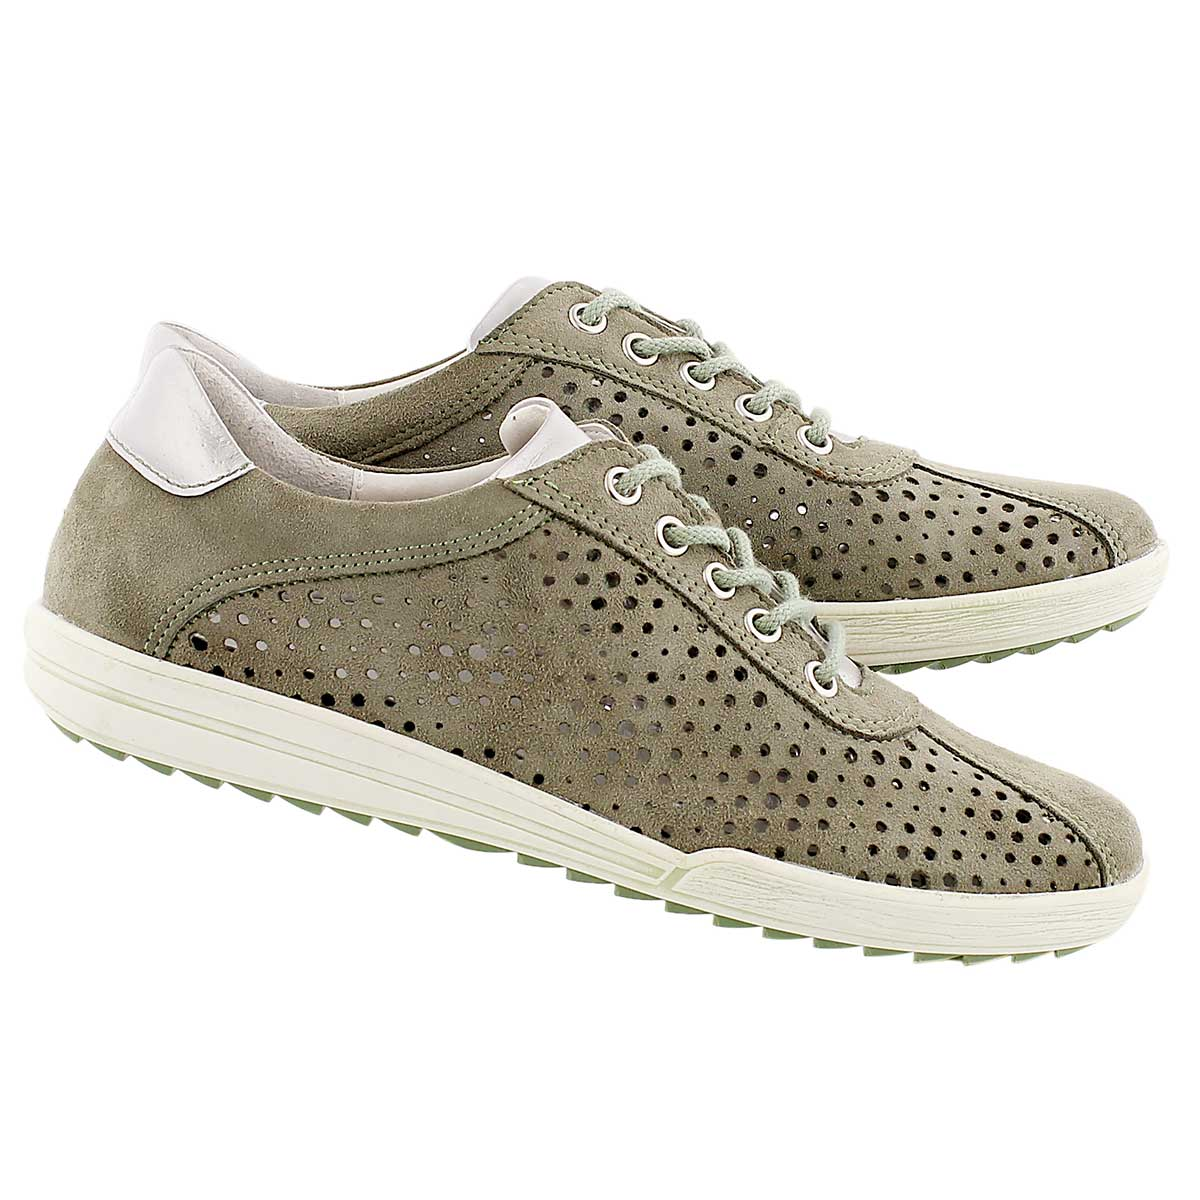 Lds Dany 49 sage perforated sneaker